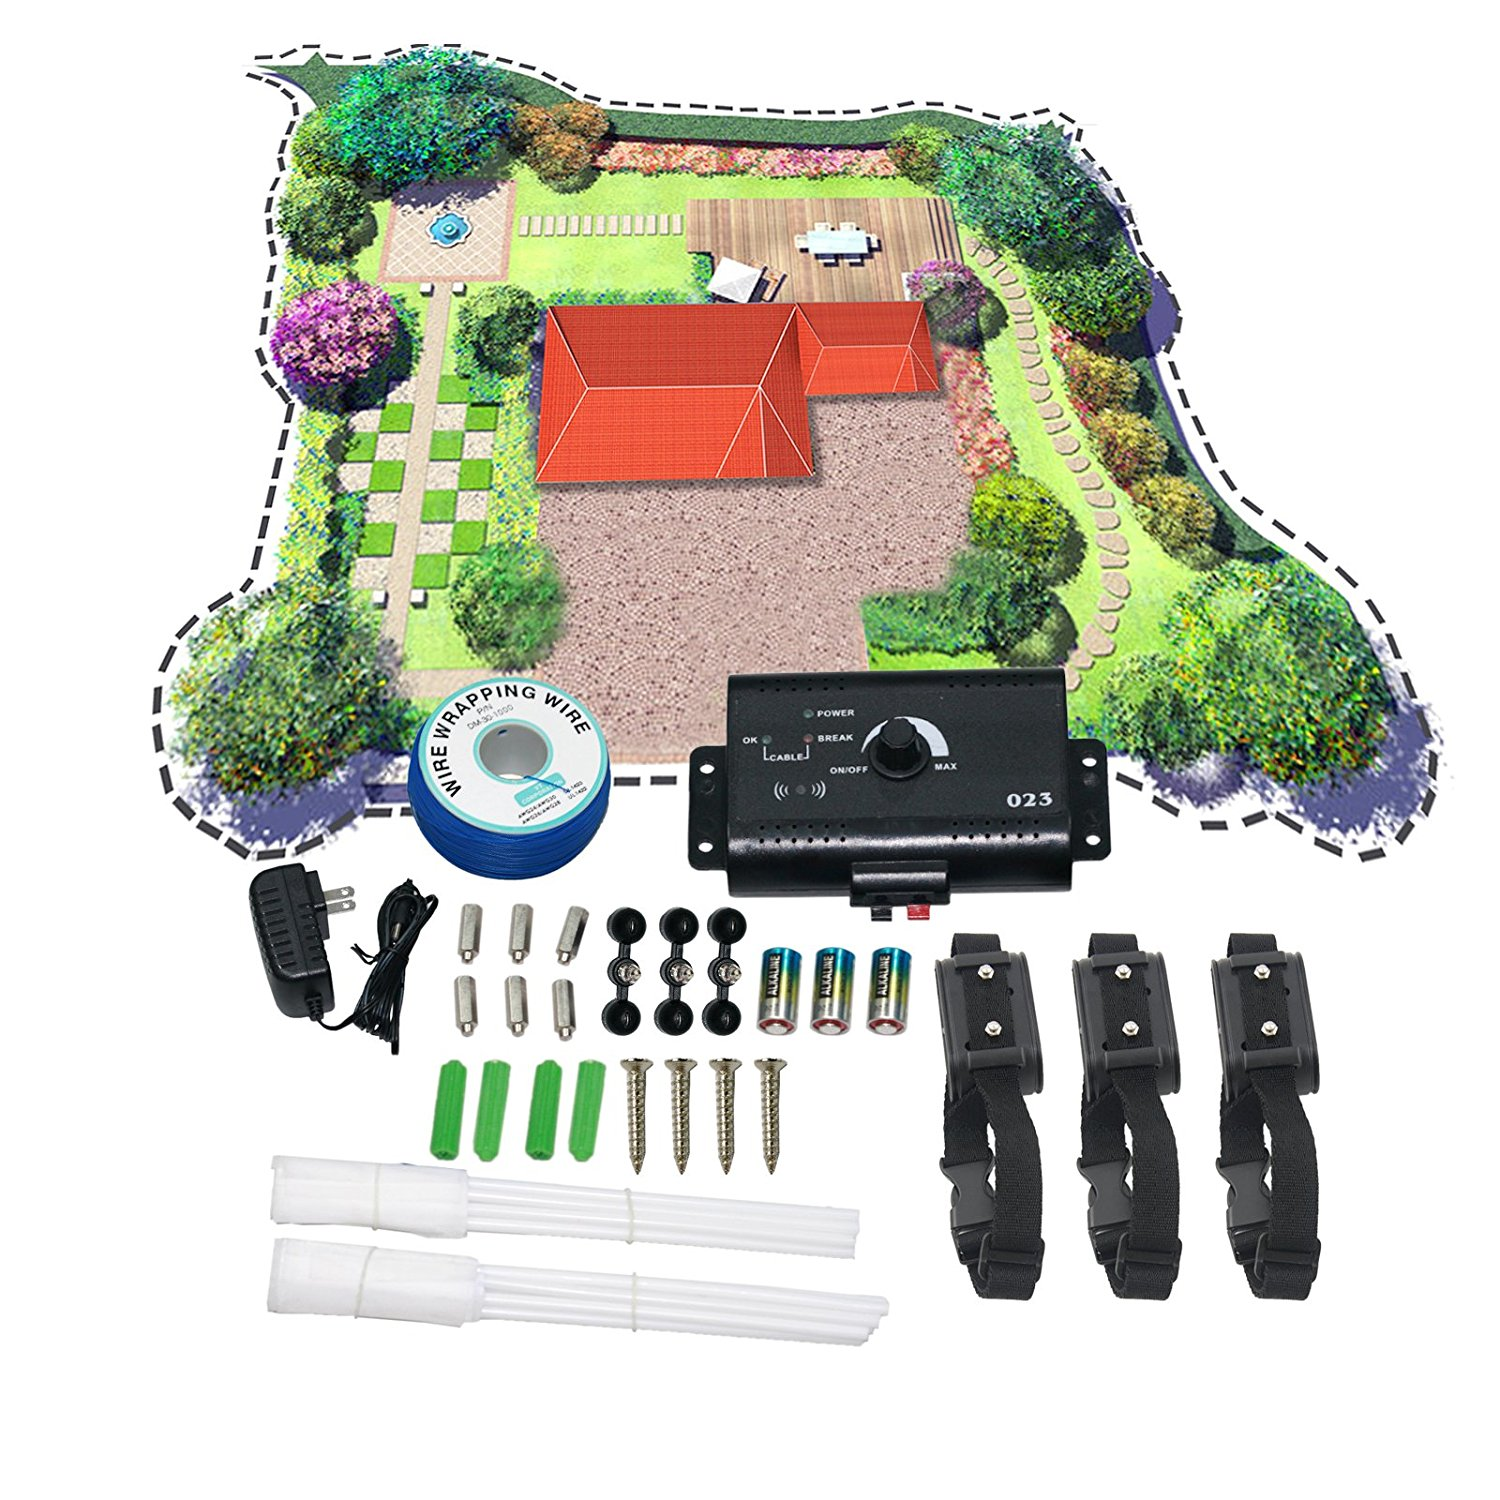 Underground Electric Dog Fence Waterproof Shock Collars 2 OR 3 Dogs